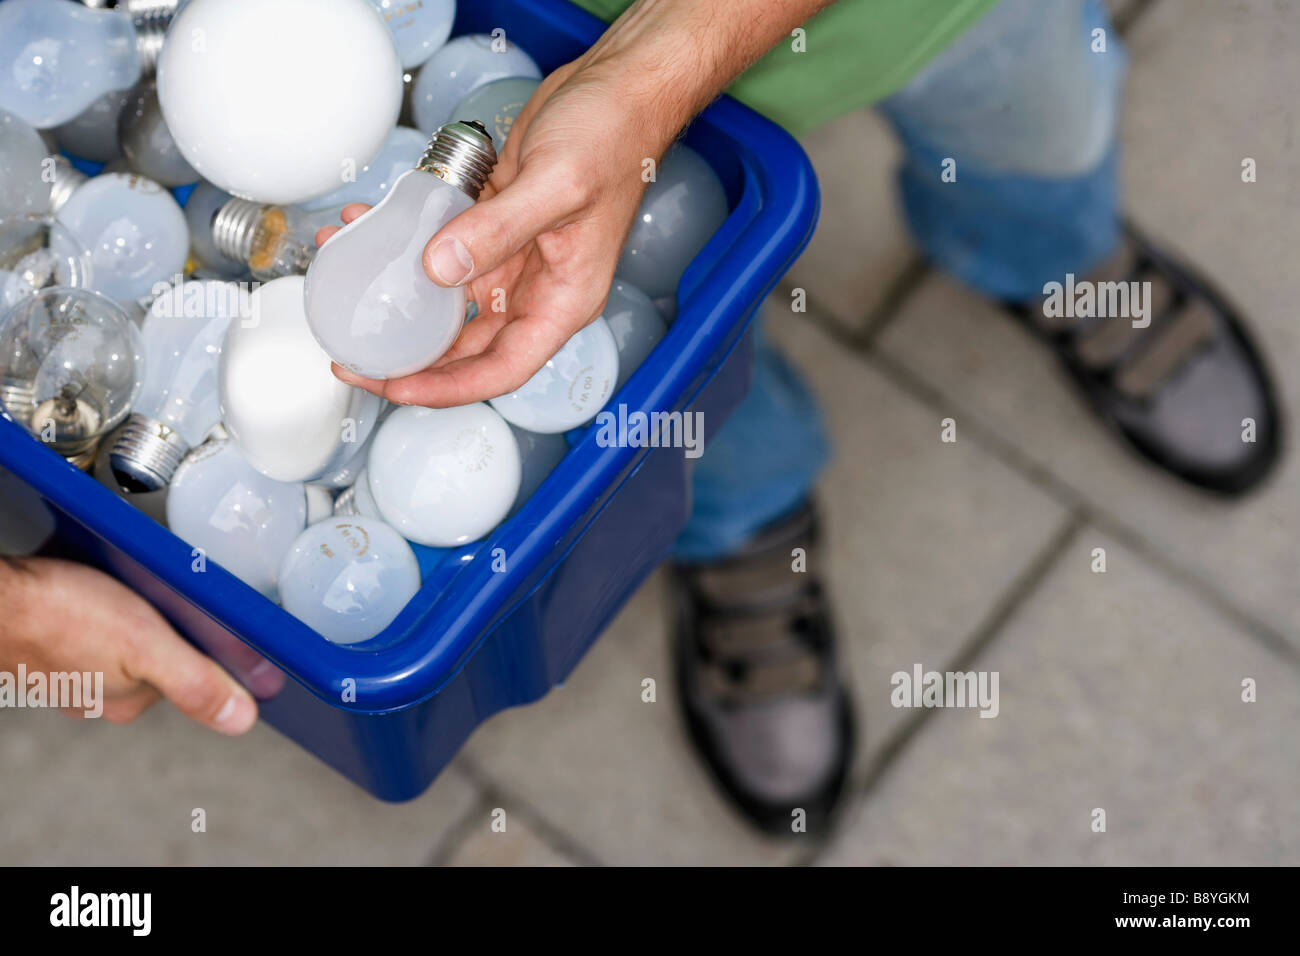 A man holding light bulbs for recycling. - Stock Image